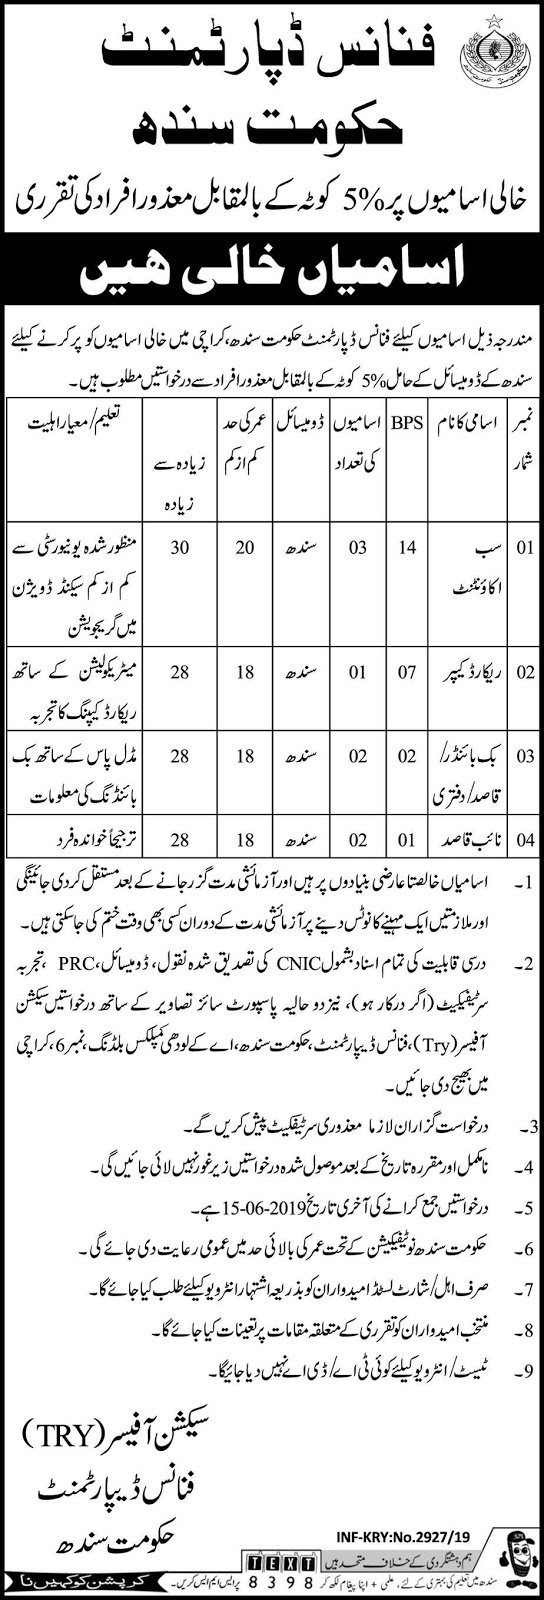 Finance Department Sindh Jobs 2019 for Sub Accountant, Record Keeper